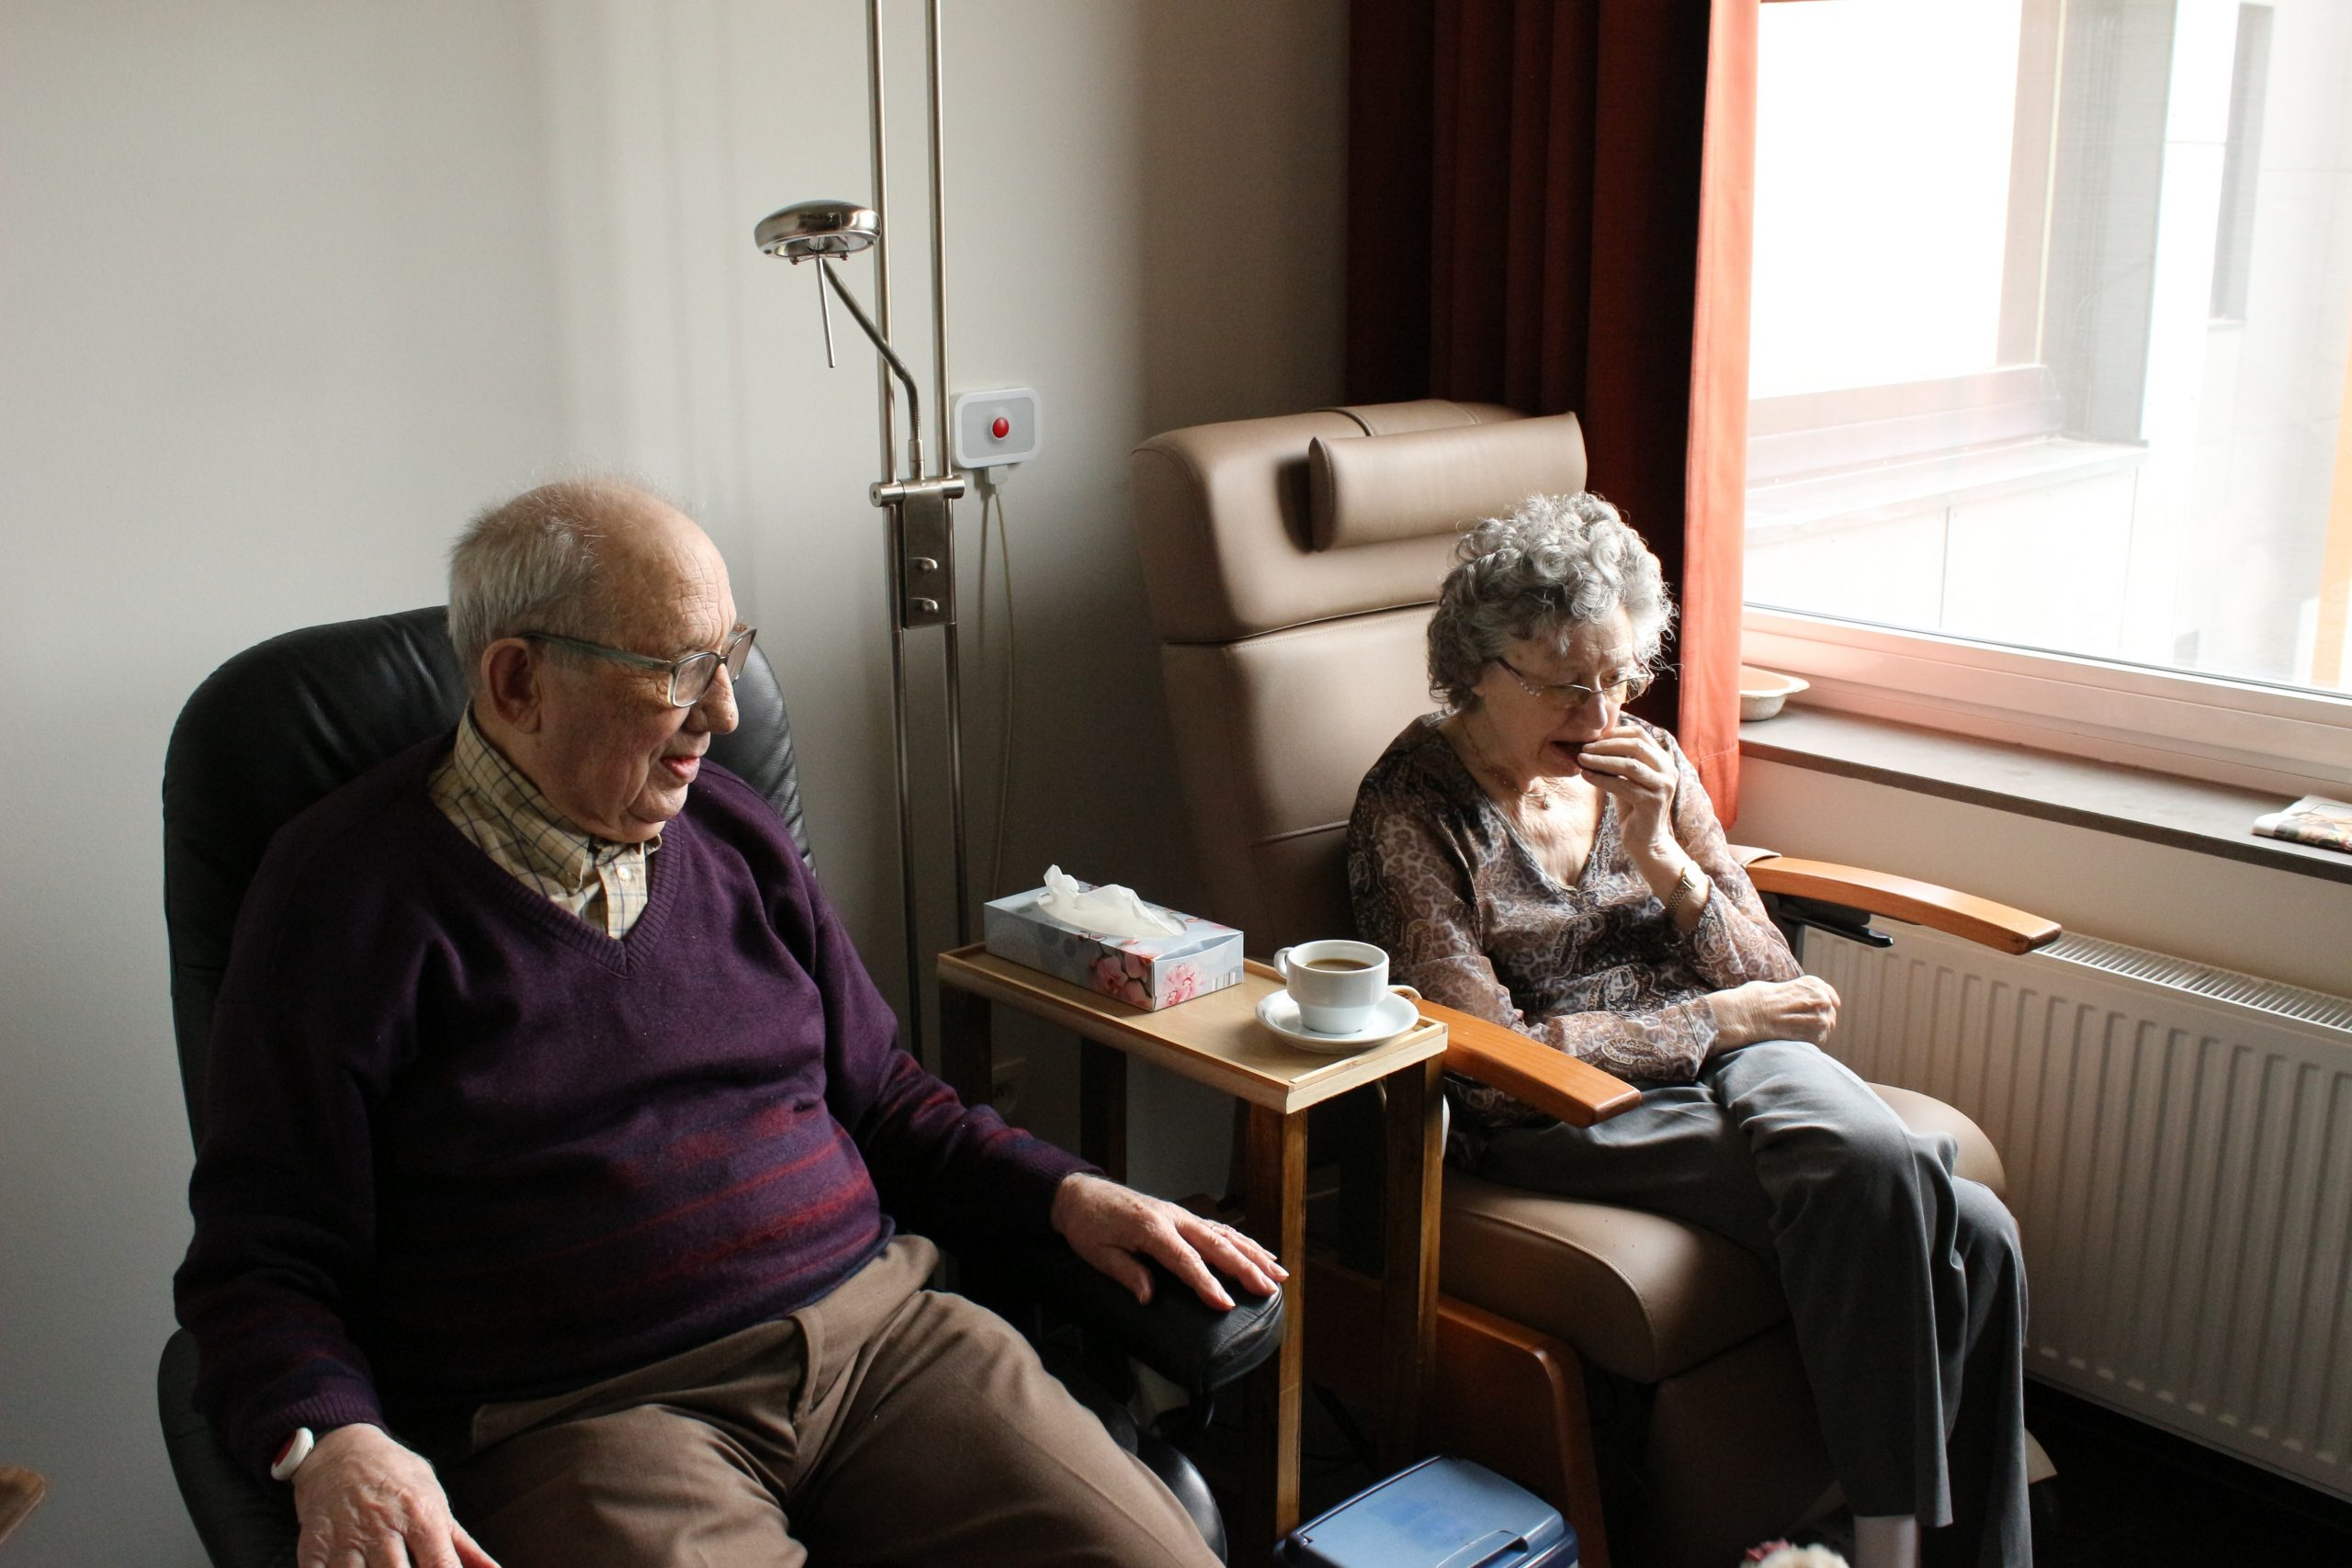 an elderly woman and an elderly man sit in chairs next to each other in a hospital room